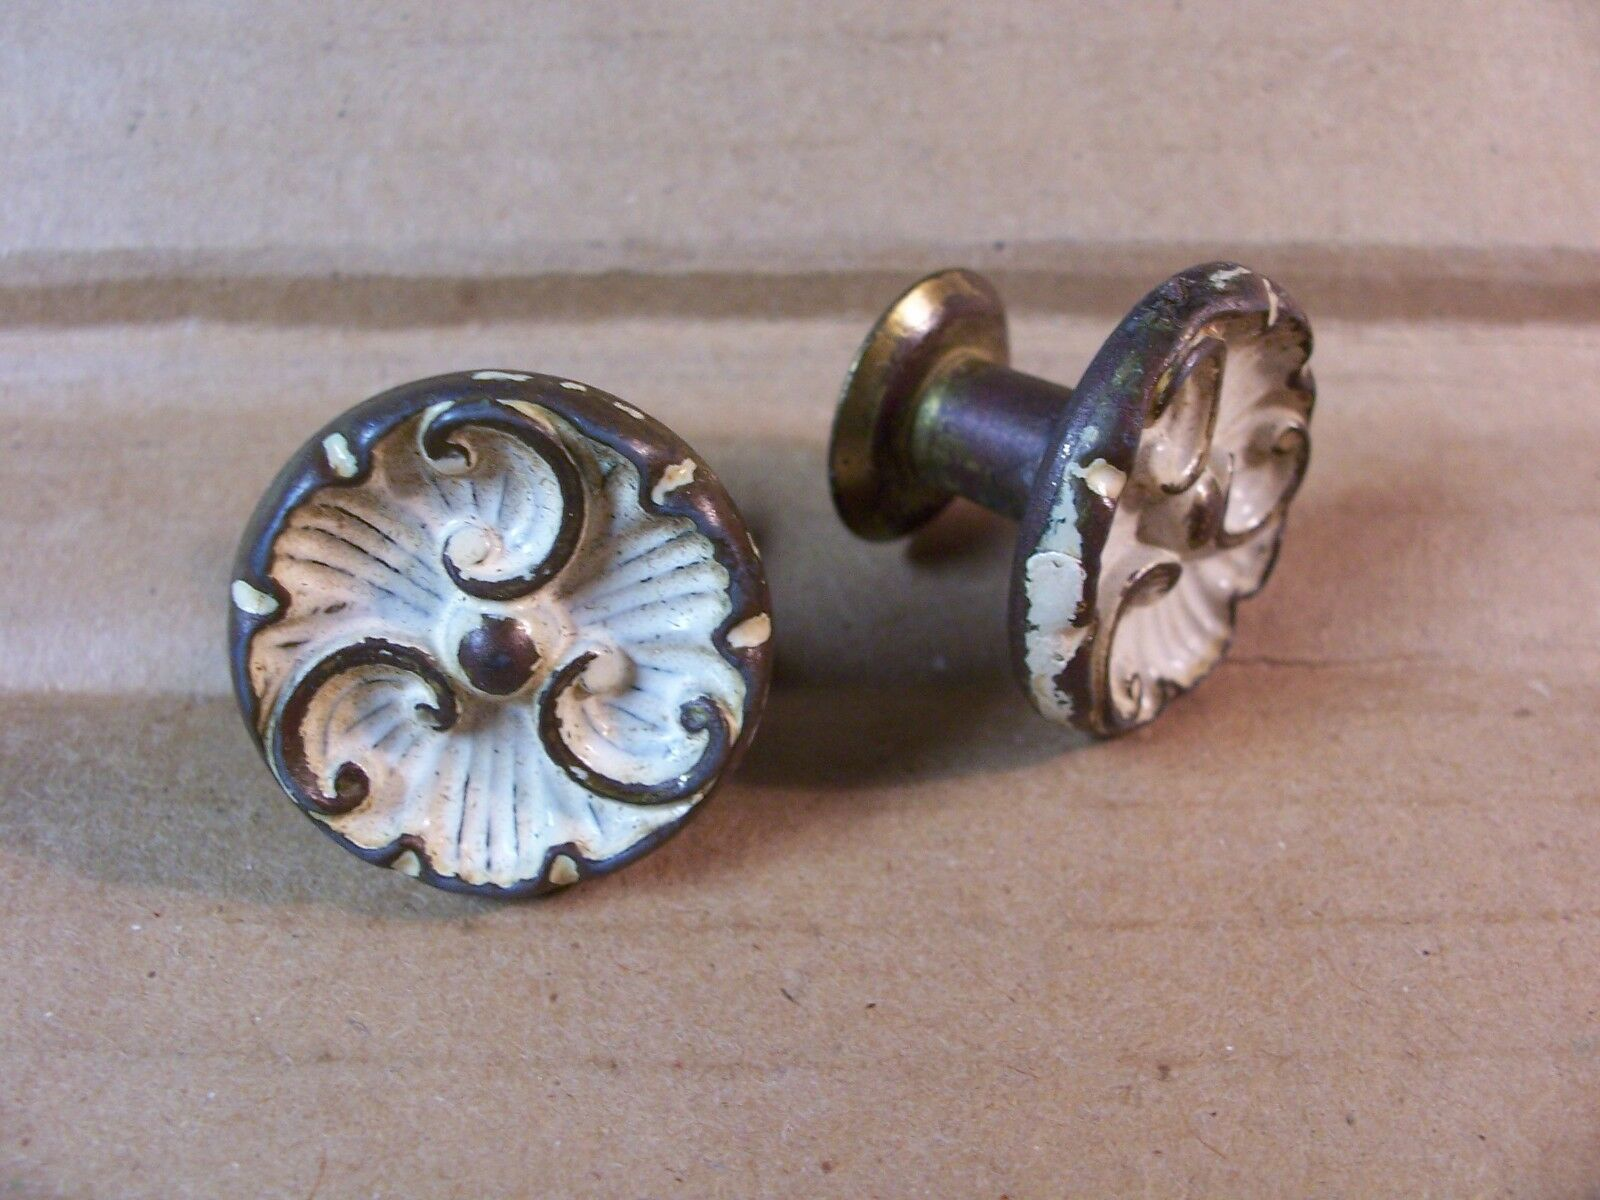 (2) Antique / Vintage French Provincial Drawer Pulls / Knos - Original Screws In